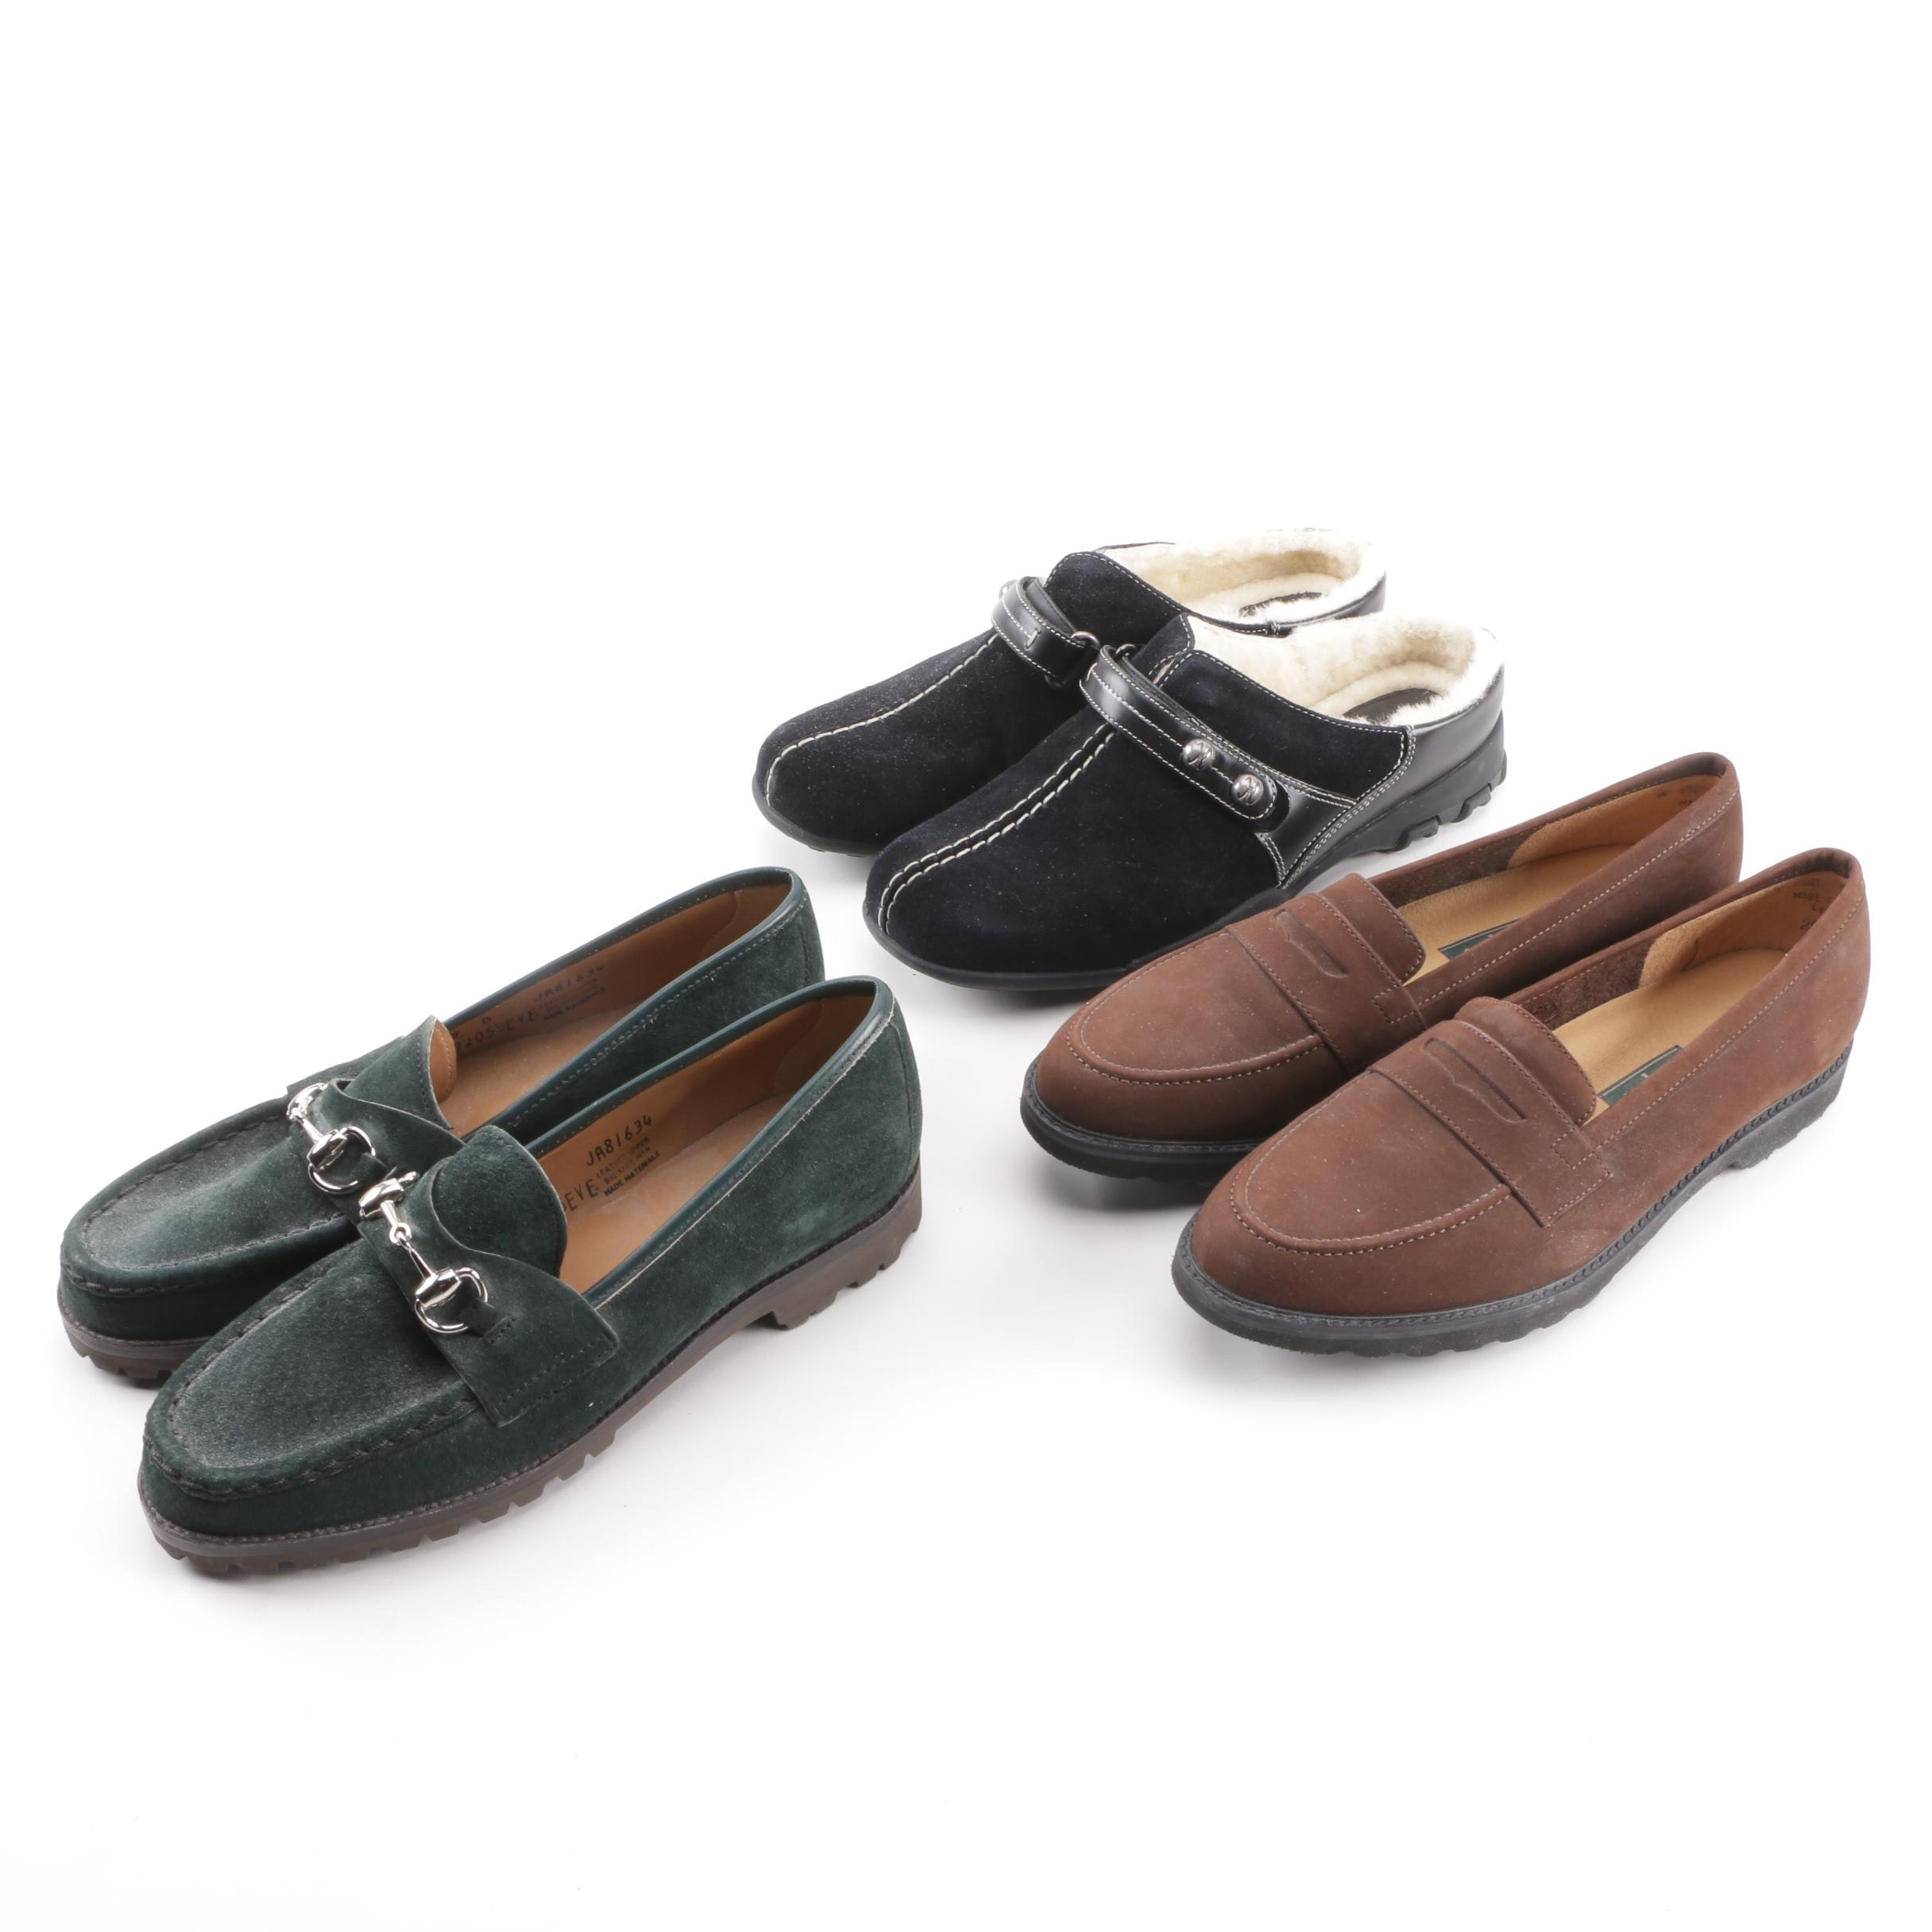 Women's Cole Haan Meribel Shearling Clogs with Tweeds and Rockport Loafers